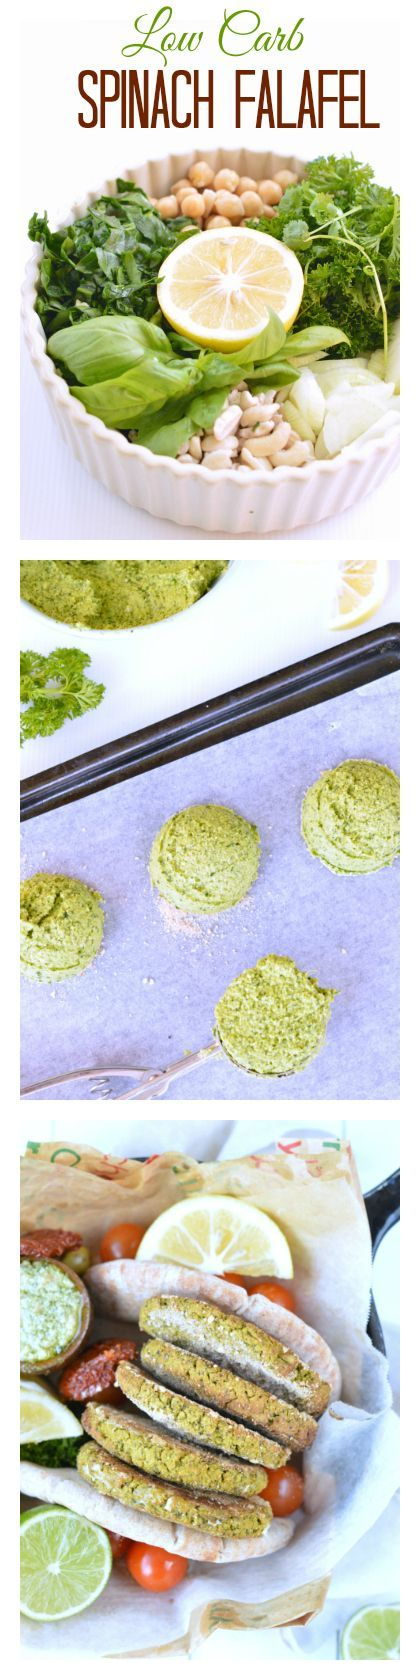 Easy Spinach Falafel ready in 10 min in a food processor. Vegan & low carb (9 g net carb per falafel) 5 g protein and only wholesome ingredients. Perfect to include in your clean eating plan as a meal or appetizer. Easy to make ahead and freeze too !                                                                                                                                                                                 More